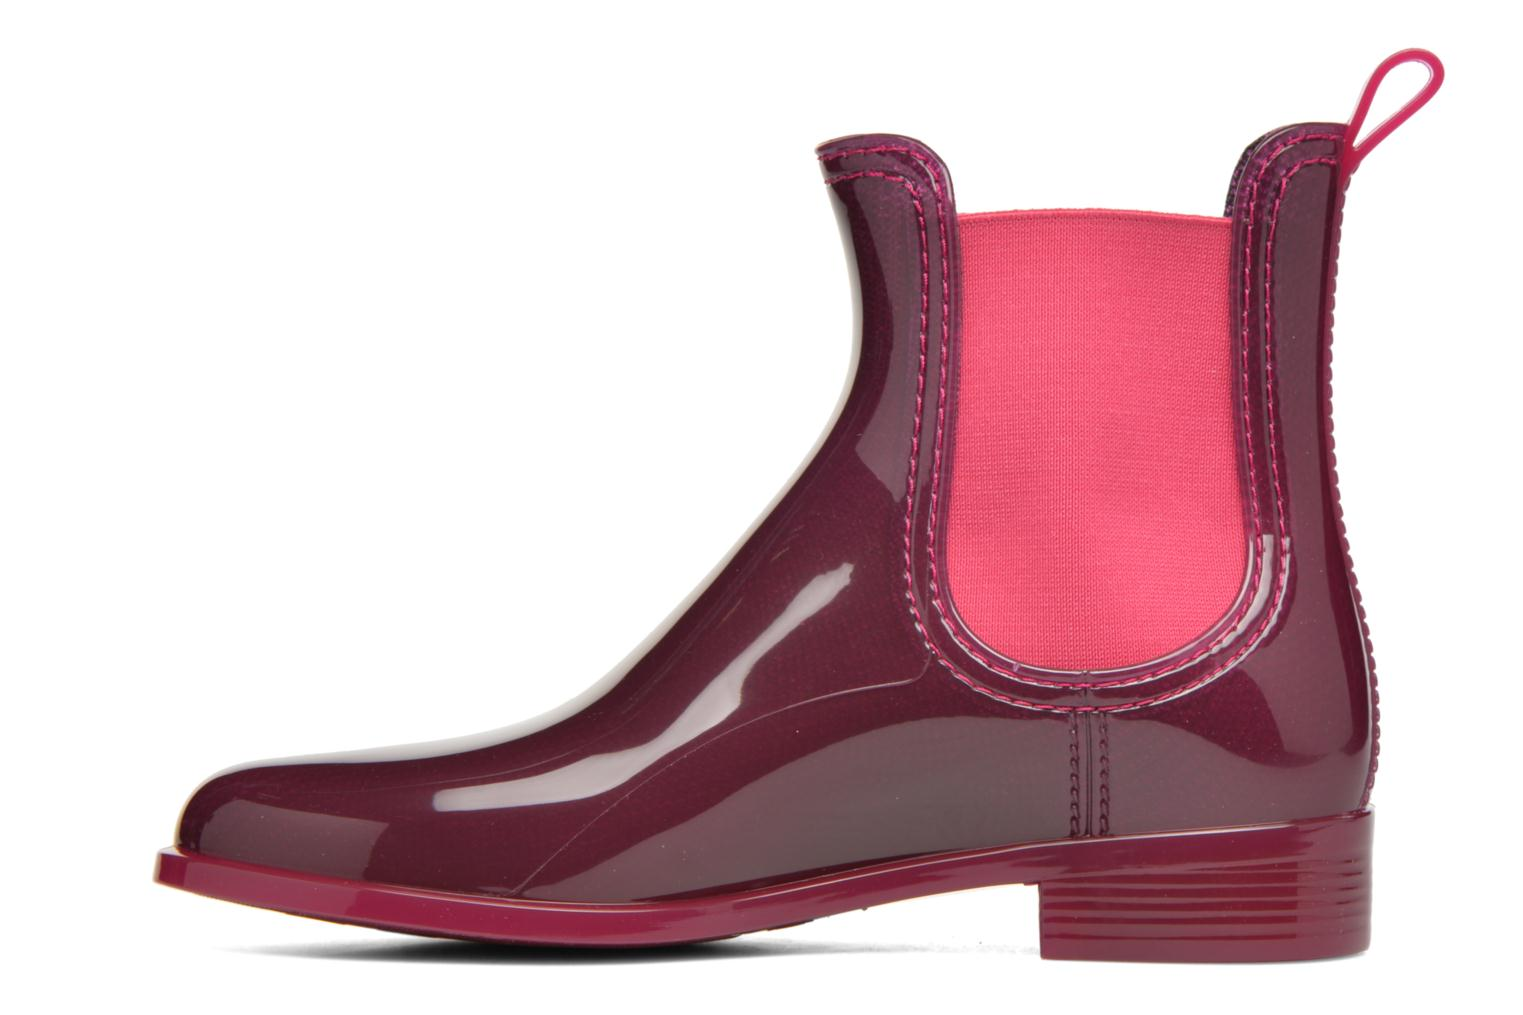 Bottines et boots Lemon Jelly Pisa Violet vue face